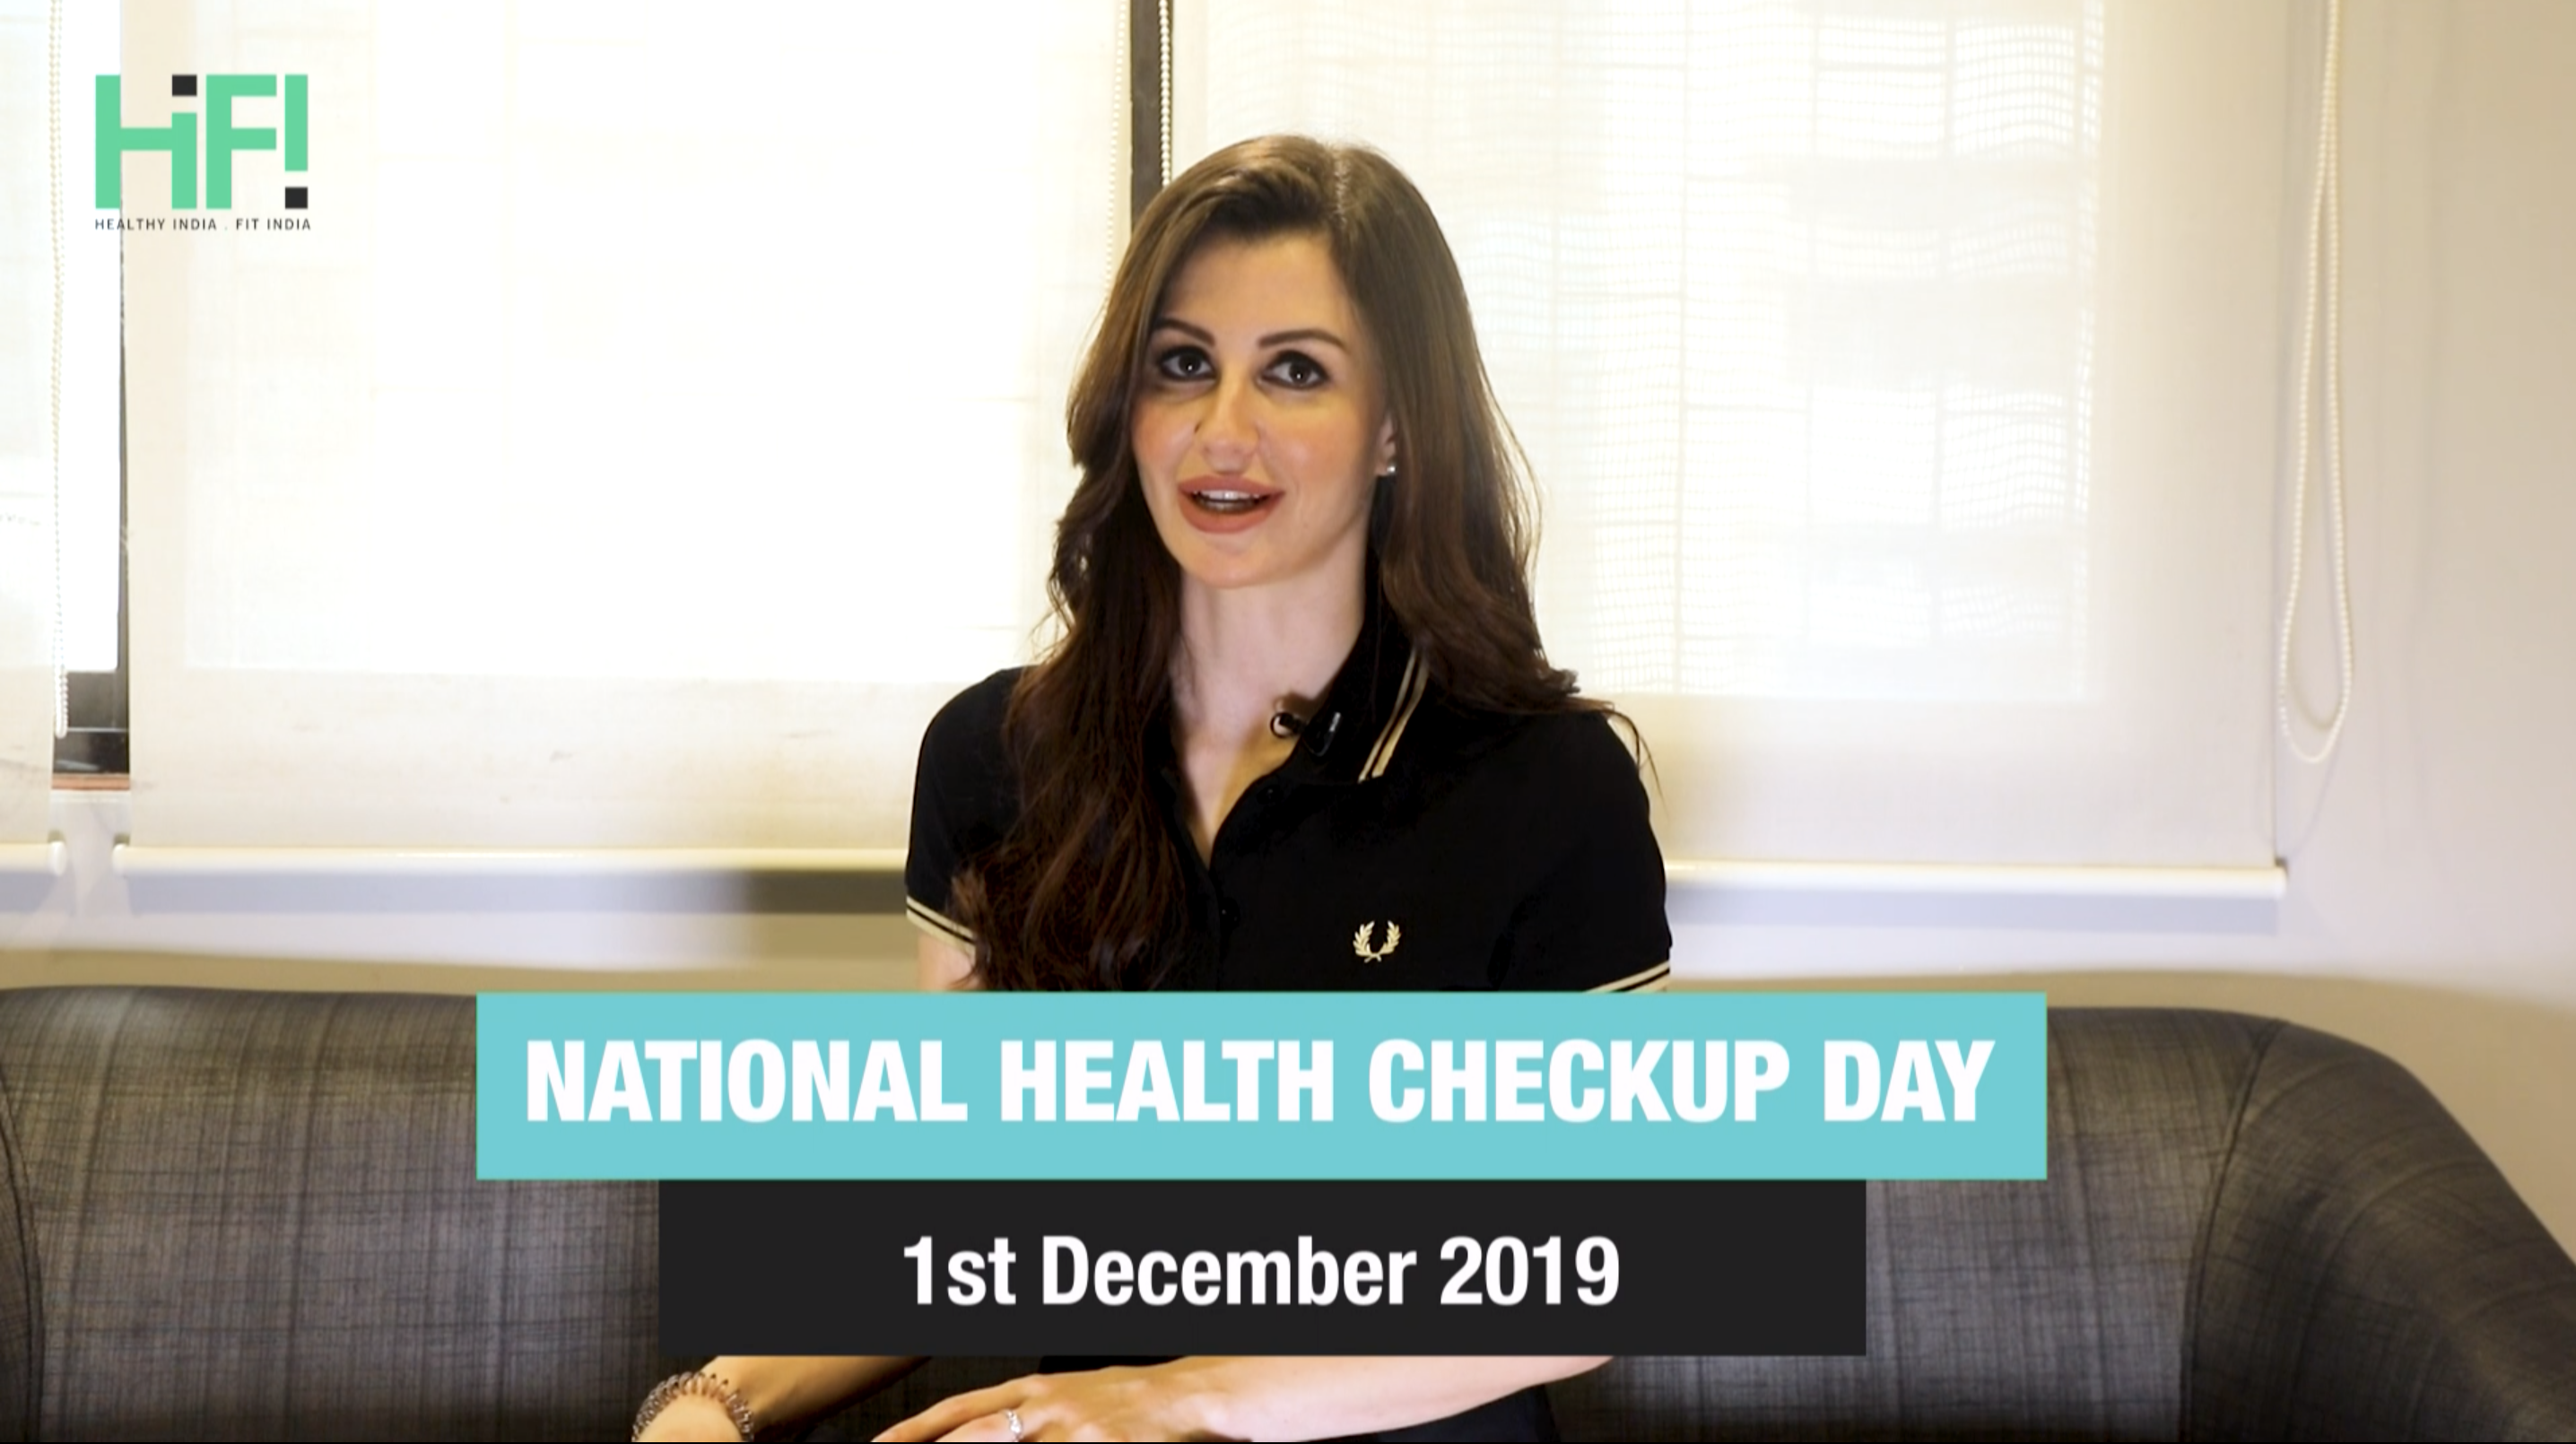 Hi-Fi groover Georgia Andriani recommends you to get a health check-up on Dec. 1